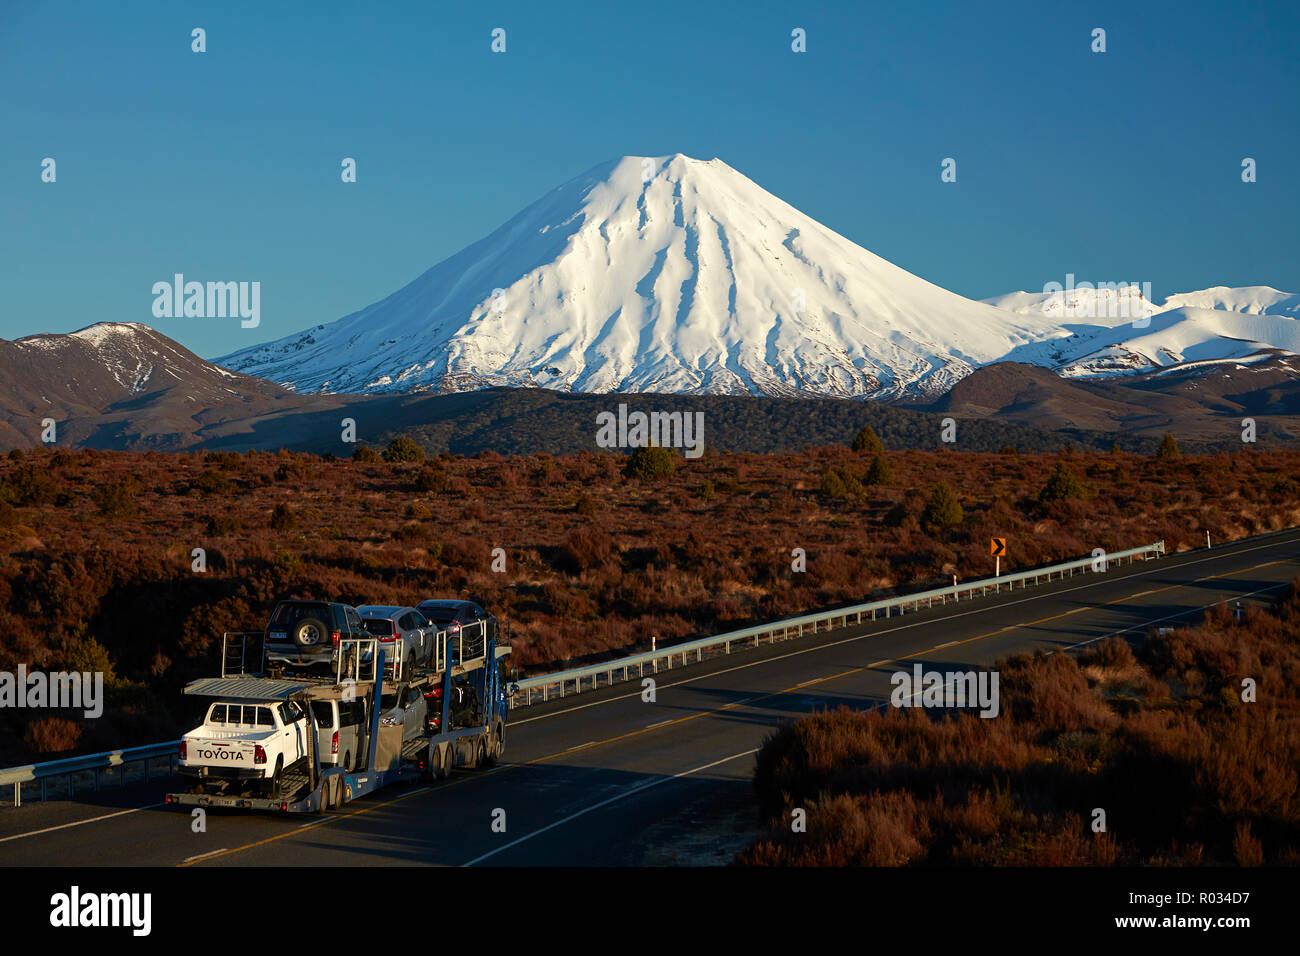 Mt Ngauruhoe and car transporter on Desert Road, Tongariro National Park, Central Plateau, North Island, New Zealand - Stock Image